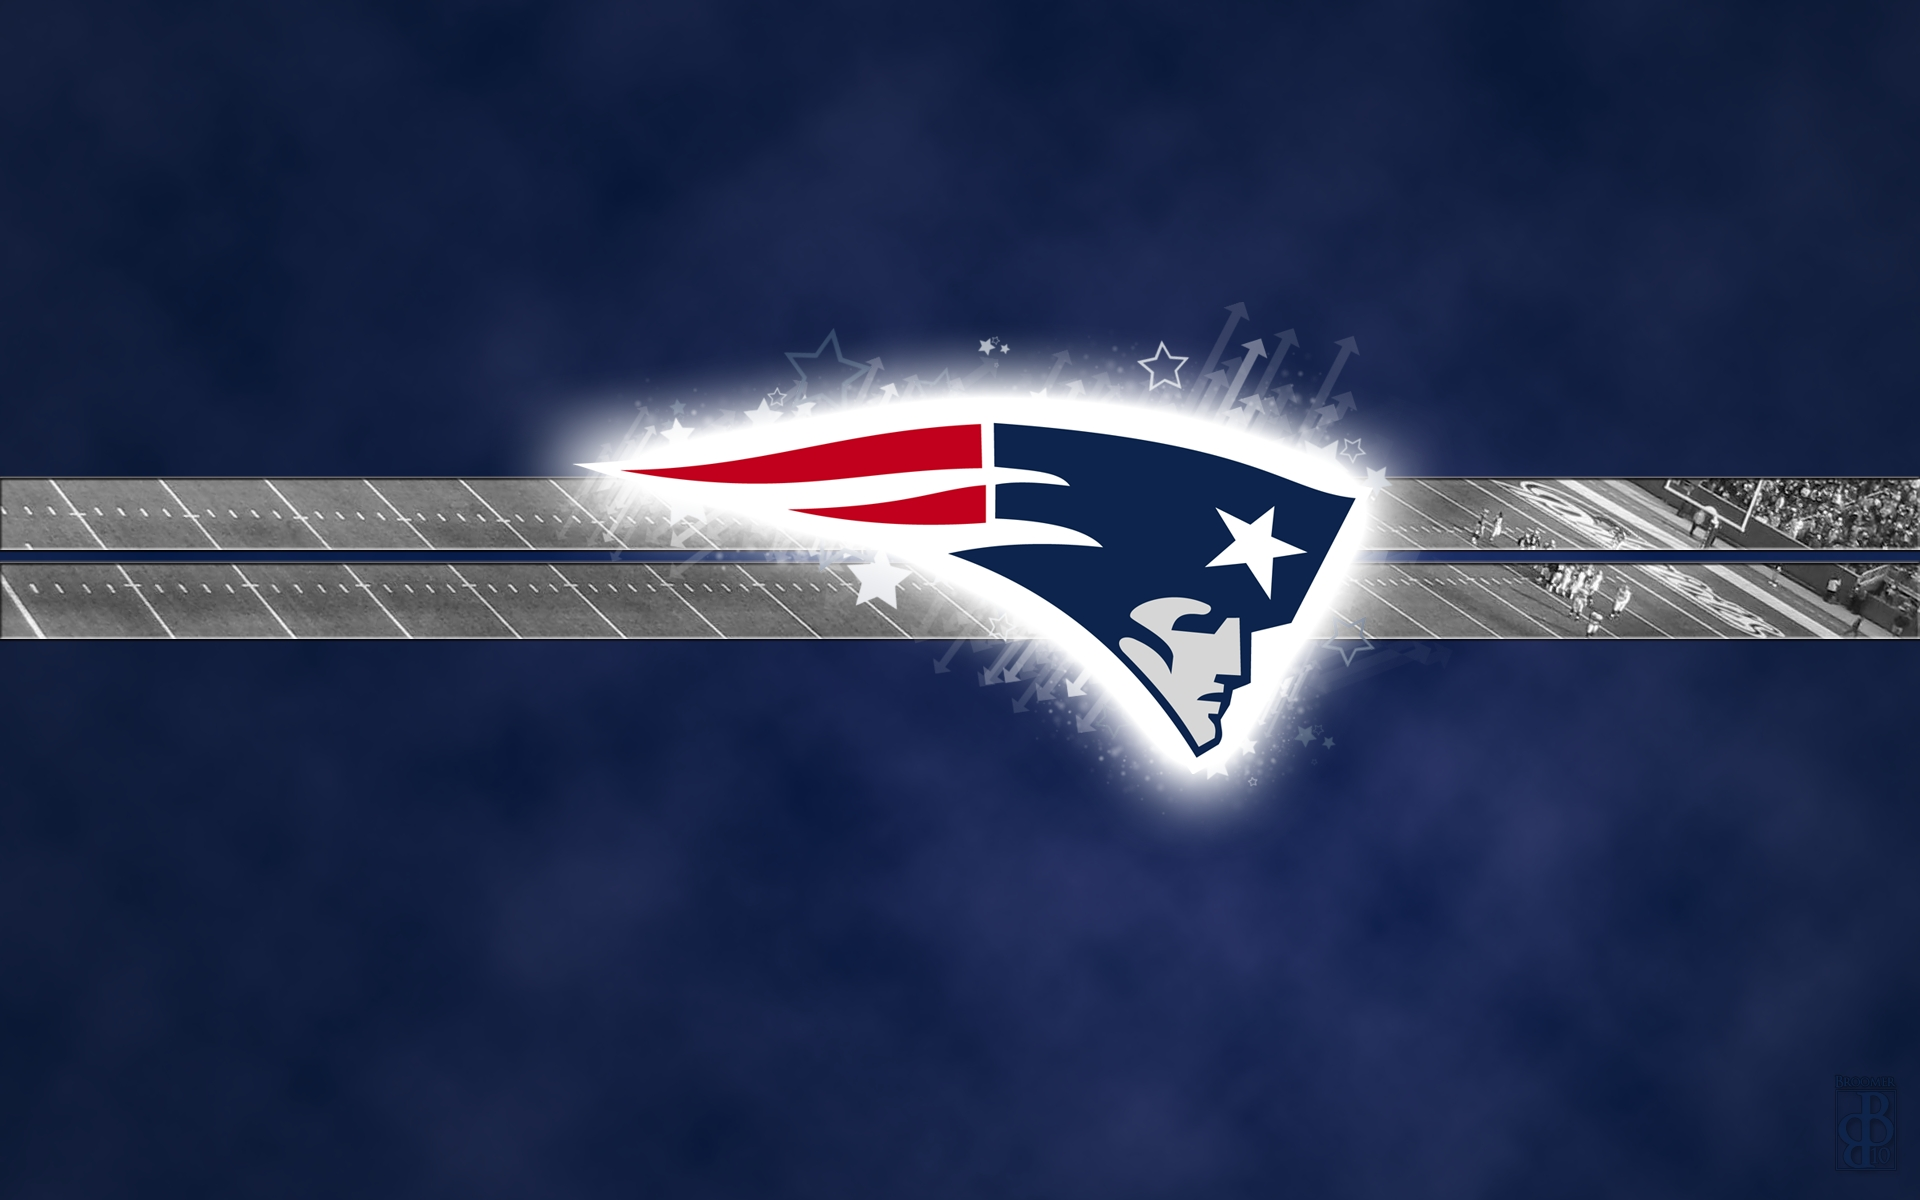 10 New New England Patriot Screensaver FULL HD 1080p For ...